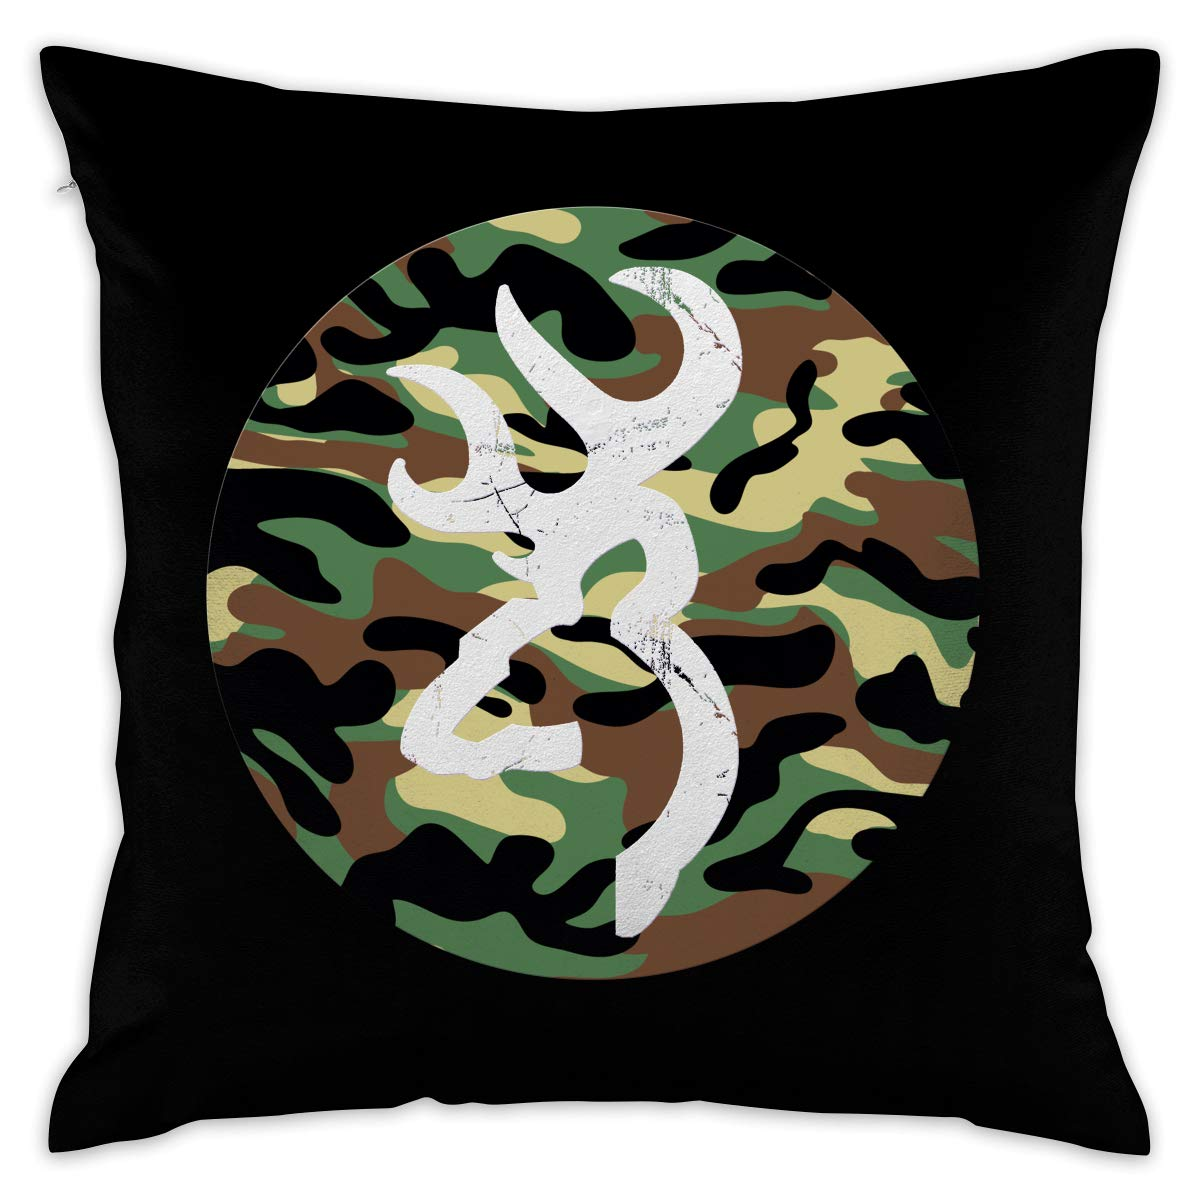 Amazon com amonee decorative throw pillow case cushion cover 18x18 camouflage deer cotton modern square covers for couch bed sofa home decor home